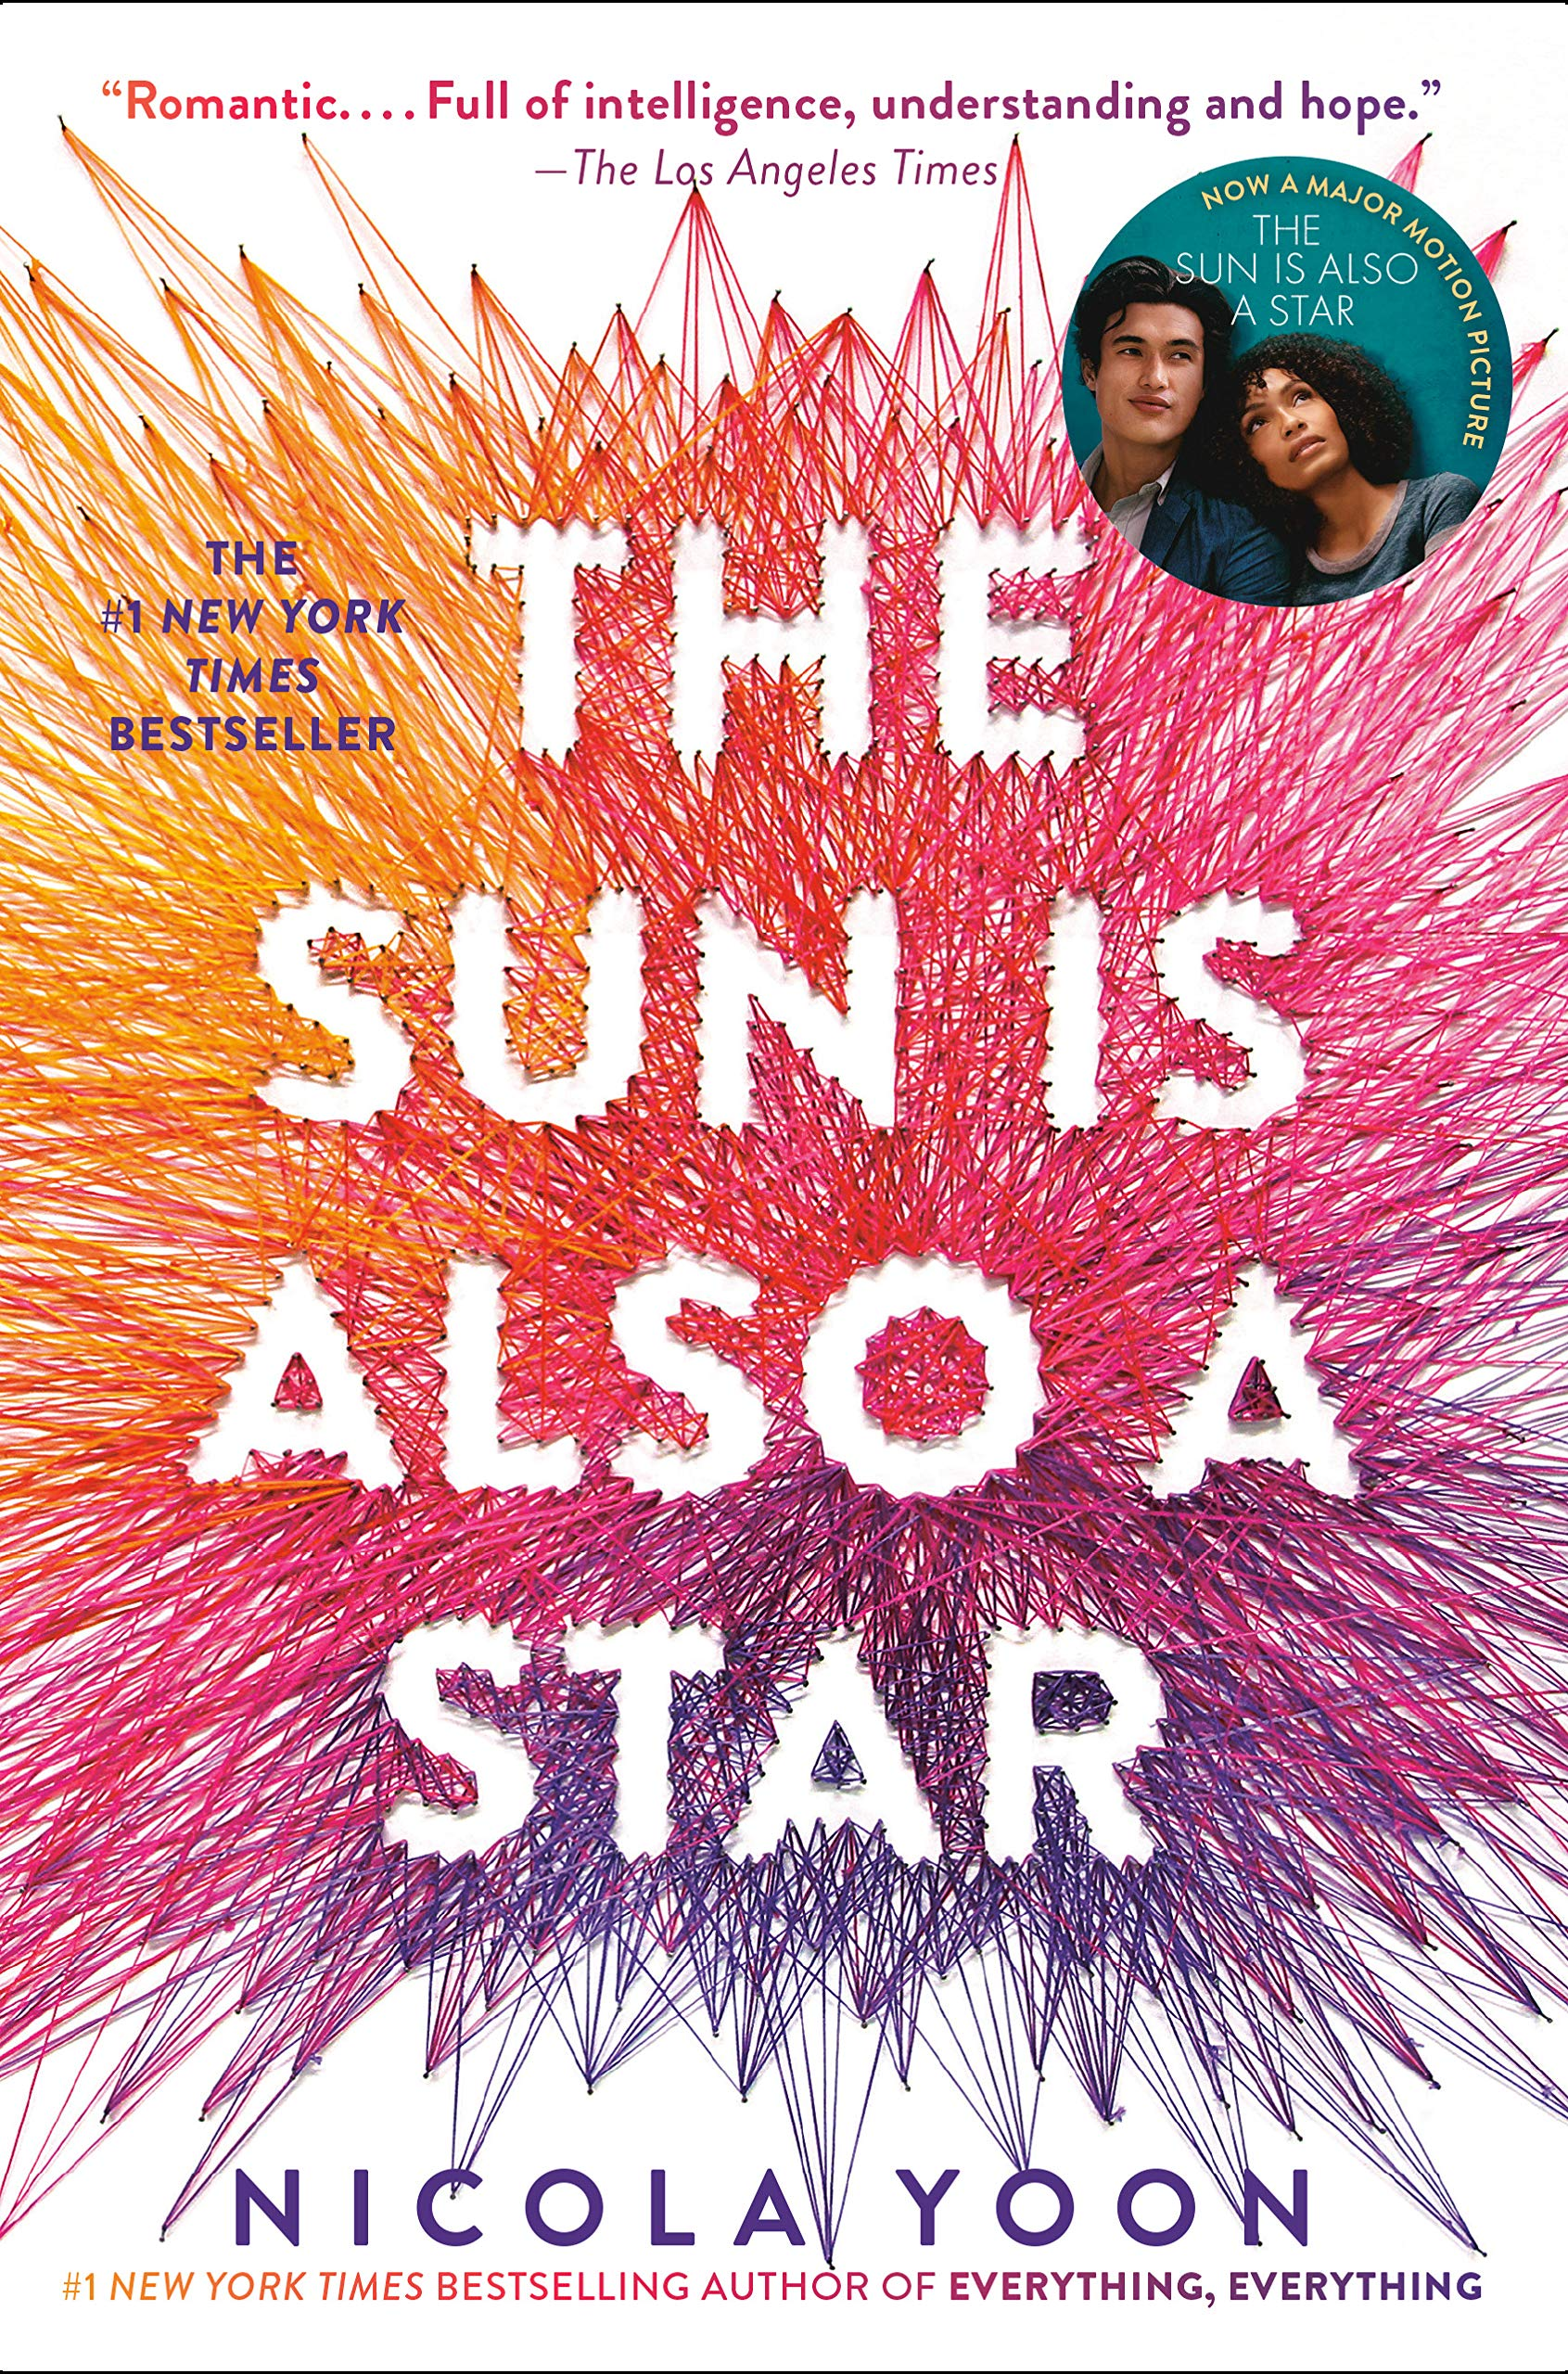 The Sun Is Also A Star by Nicola Yoon - Rating: 5/5I remember seeing the cover of this book EVERYWHERE. Barnes & Noble, Target, Amazon ads, Facebook ads, Instagram, literally everywhere! But for some reason I wrote it off as some very childish high school book not even giving the back cover synopsis a glance (Which is surprising given high school romance is usually one of my favorite genres — i.e. To All the Boys Trilogy). Once I saw the trailer during commercial breaks of The Bachelorette (#BachelorNation) though, my idea of the book was immediately changed and I ordered the book and then proceeded to devour the whole thing in one day. I'm so mad at my past self for not looking past the cover because this story is so amazing. Endearing, honest, mature, funny, sad, and happy. Natasha is on a mission to get herself and her family out of being deported from the country before their flight later that night. Daniel is on his way to a college interview that he really doesn't want to go to. They stumble upon each other when Daniel saves Natasha from being run over by a car speeding through NYC traffic. Daniel, the romantic, immediately feels sparks. Natasha the overt realist only sees annoyance (and cuteness). Daniel, trying to waste time before his meeting bets Natasha that he can make her fall in love with him in one day. Obviously many ups and down happen along the way but every part of it is beautiful and not at all cutesy. My favorite part about this book though, is the way it's written. It switches back and forth between Natasha, Daniel, and The Universe. And strangely The Universe sections were some of my favorites. These sections were first person narratives of strangers that Natasha and Daniel pass by or encounter and the vulnerability the author brings to these practically invisible characters is beautiful and sometimes heartbreaking. I still haven't seen the movie, but if it's anything like the book I'll be happy.Is it a must read? Yes! A refreshing take on a teen romance.